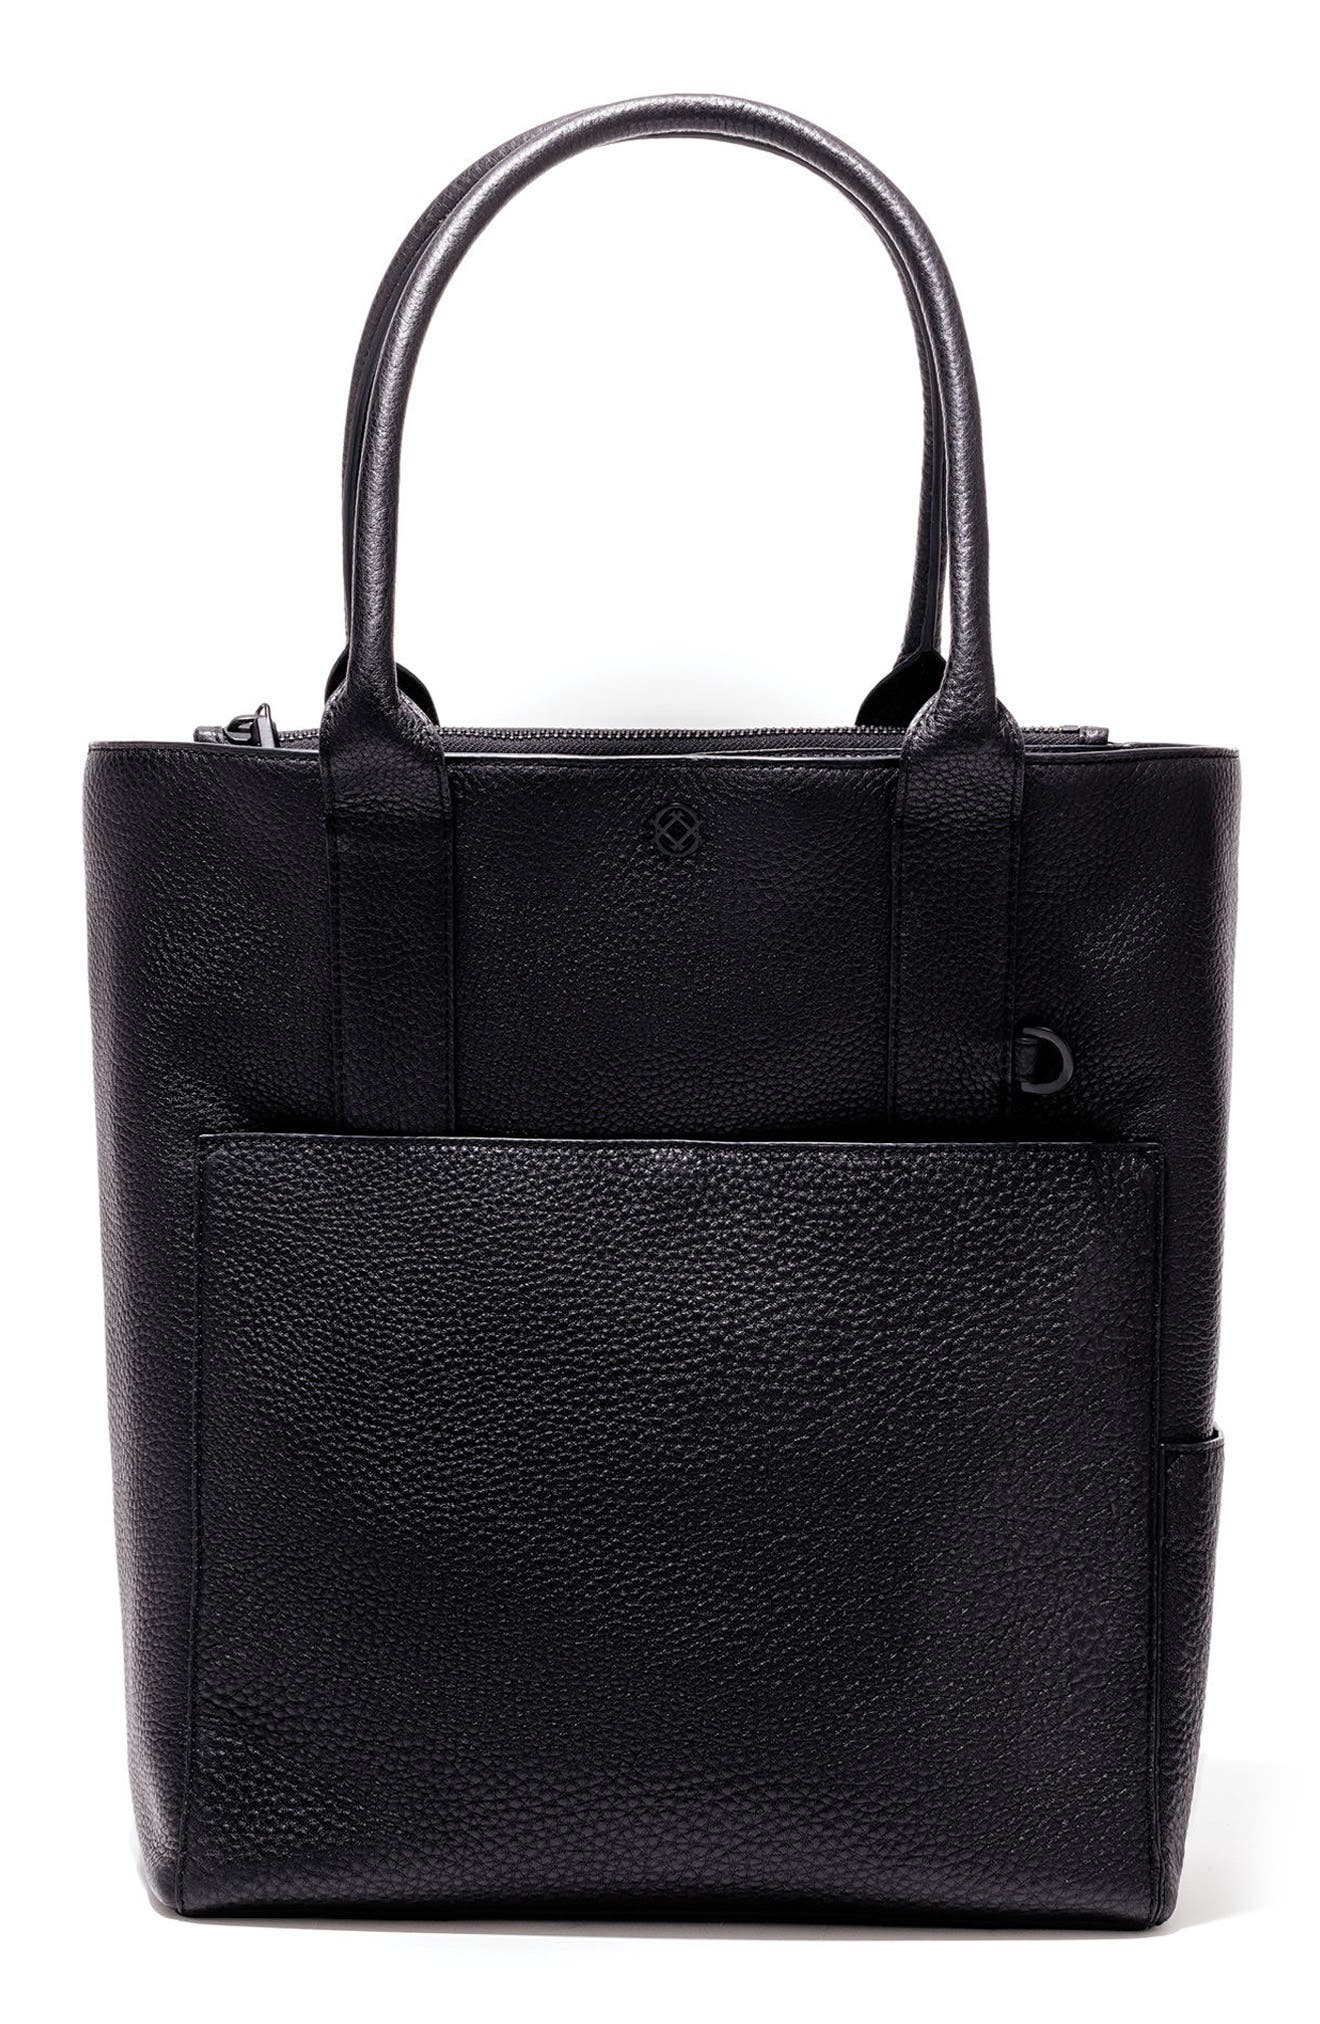 DAGNE DOVER, Charlie Leather Tote, Main thumbnail 1, color, ONYX